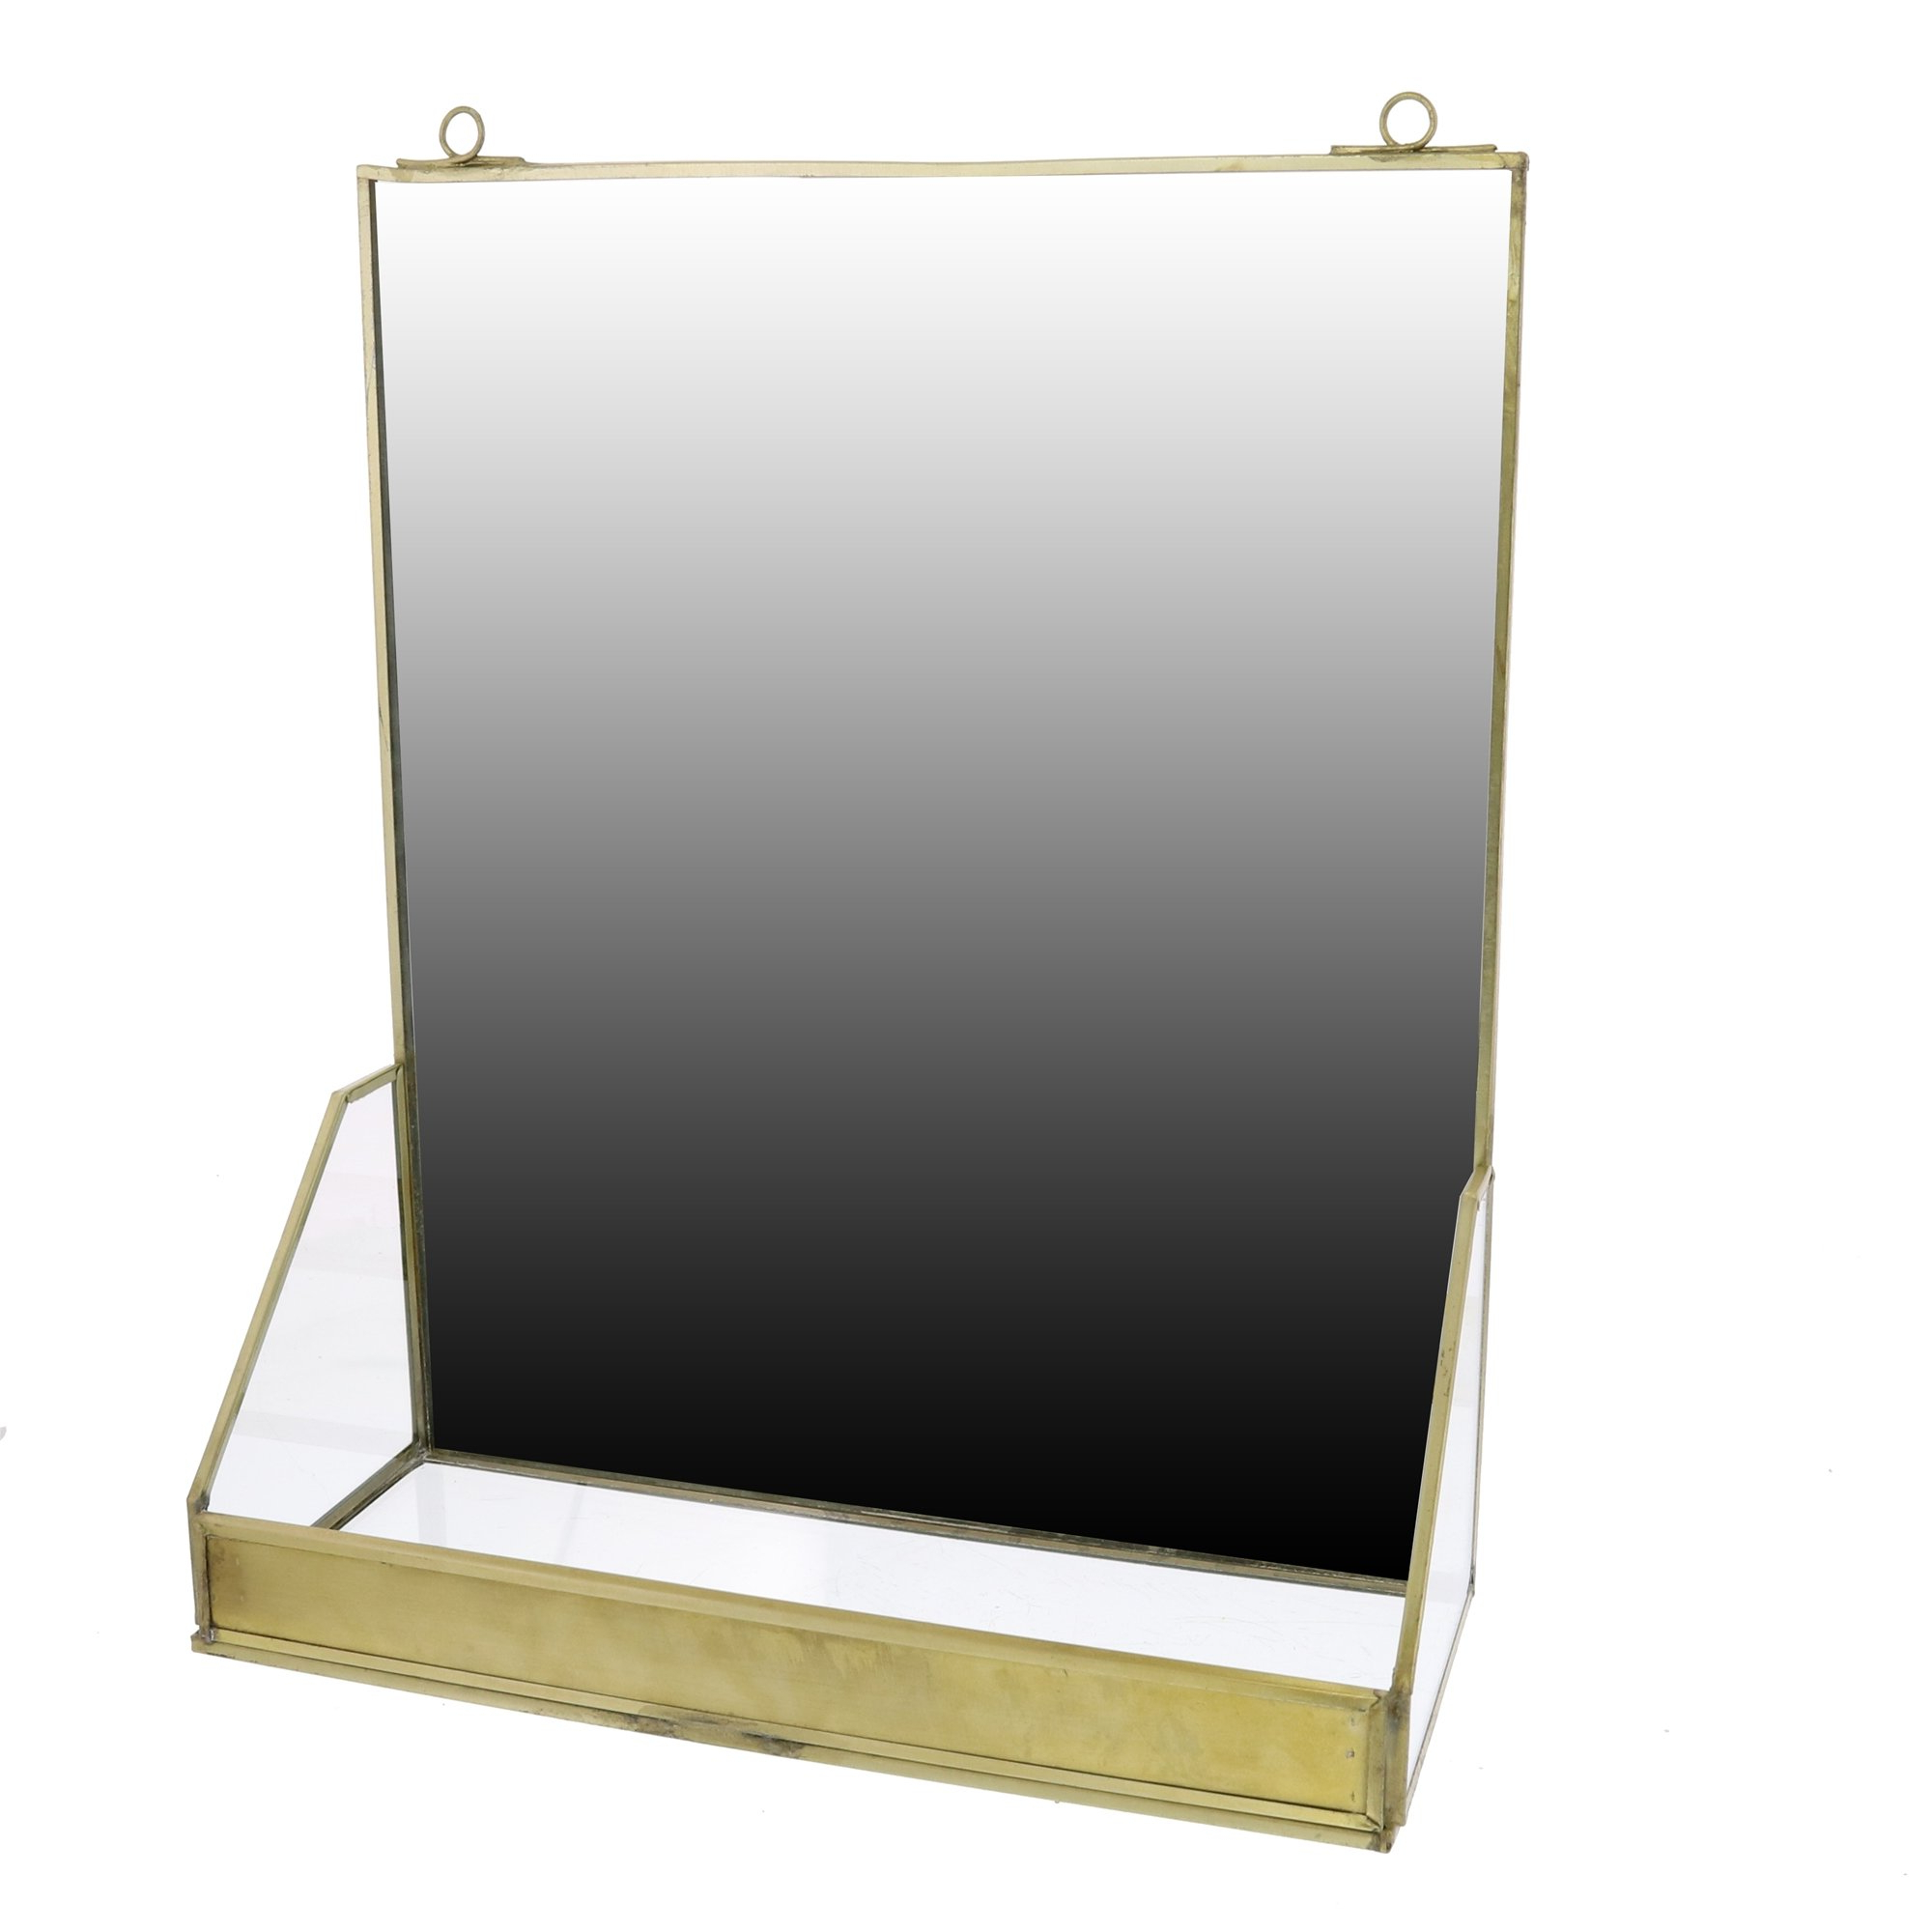 Bartolo Accent Mirrors Inside Most Up To Date Thrailkill Accent Mirror With Shelf Brass (View 4 of 20)